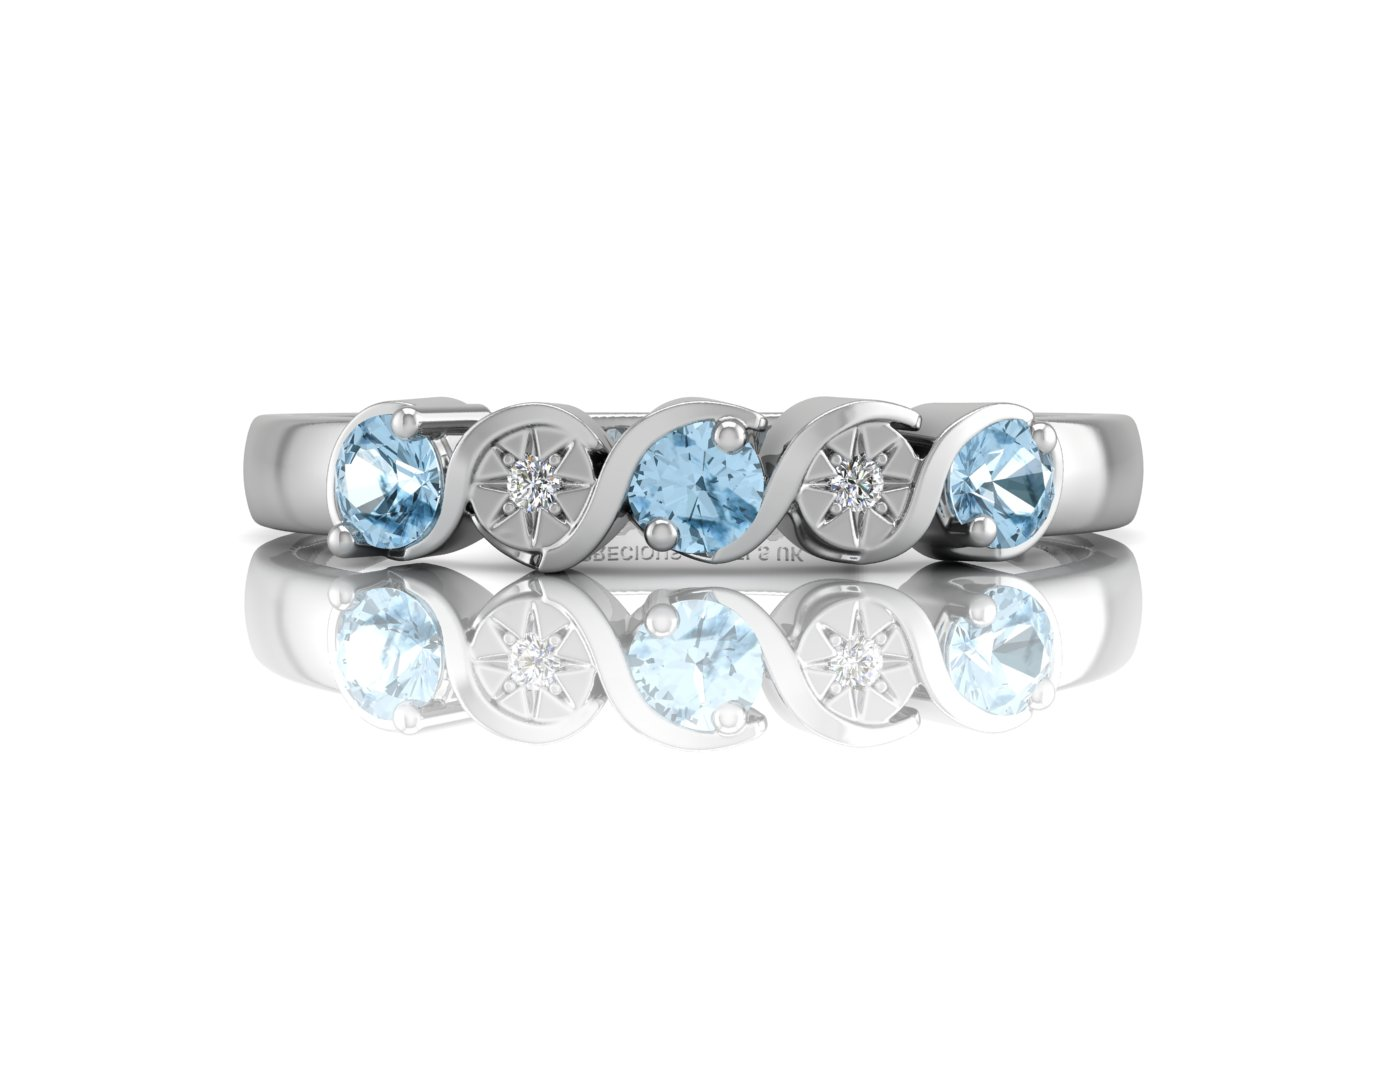 9ct White Gold Semi Eternity Diamond And Blue Topaz Ring 0.01 Carats - Image 4 of 4